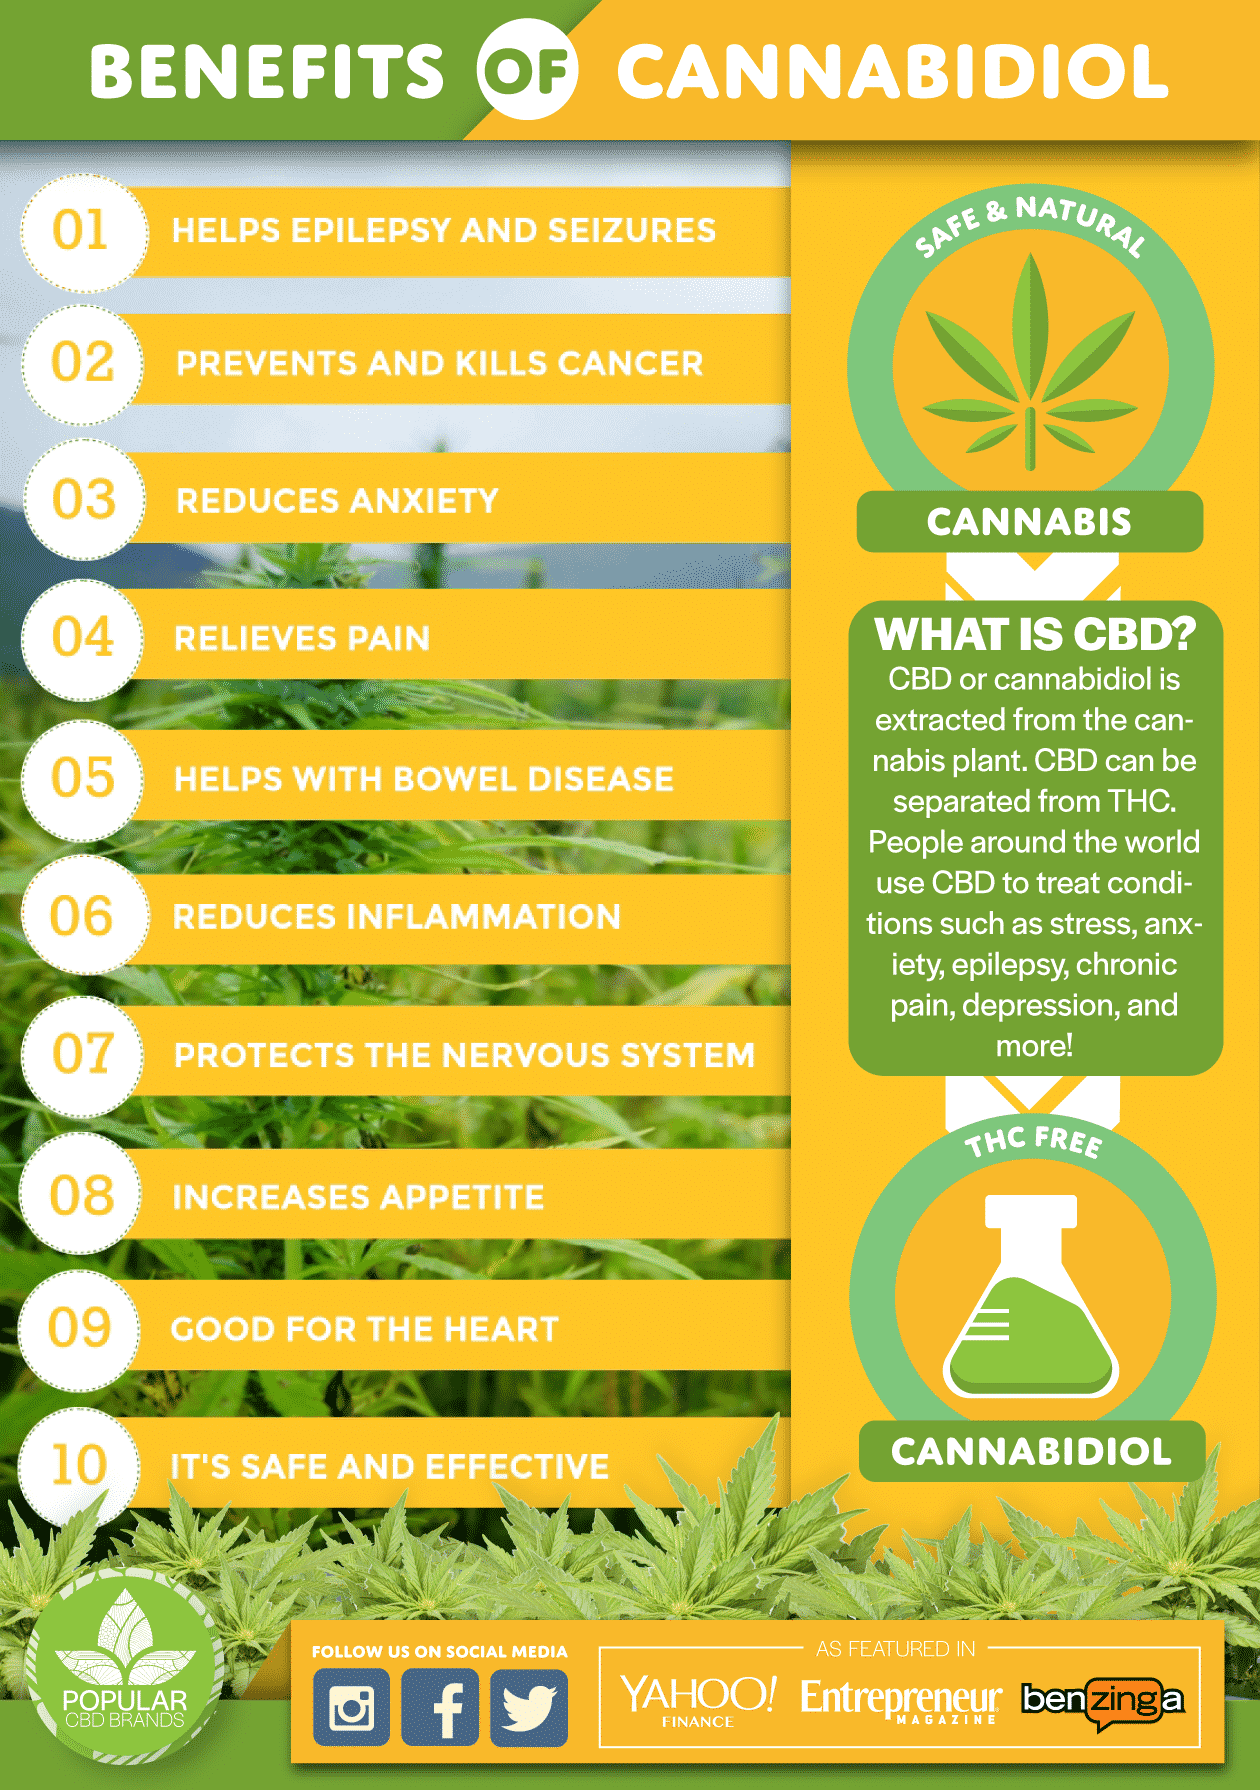 Best CBD oil - Benefits - Popular CBD Brands